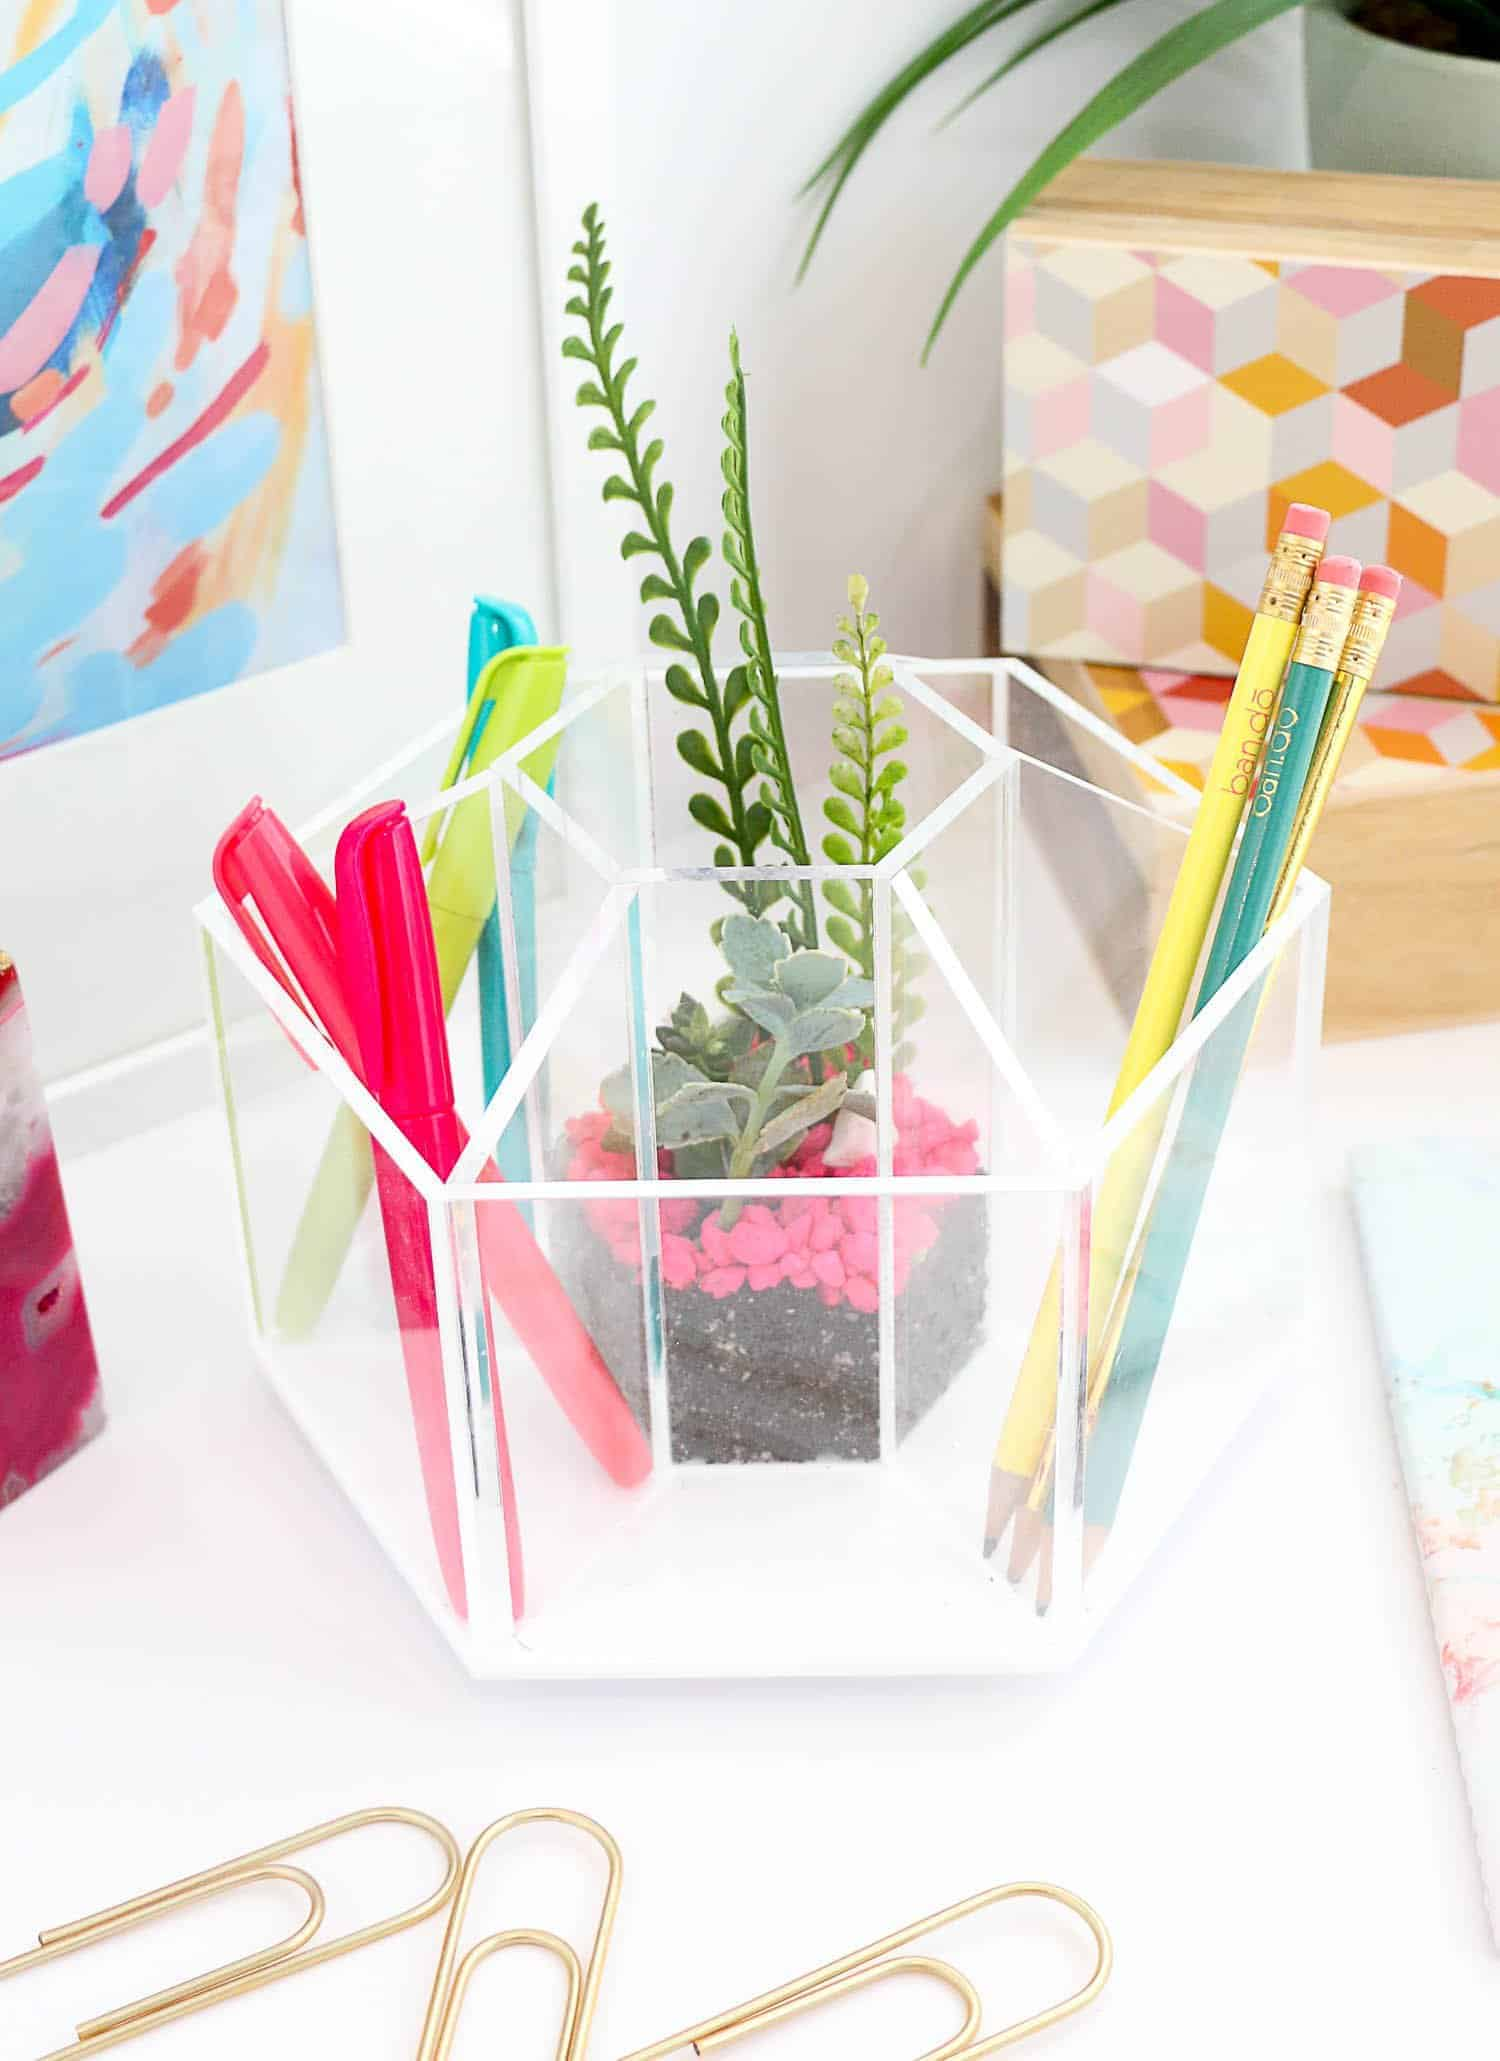 DIY desk decor - terrarium desk organizer